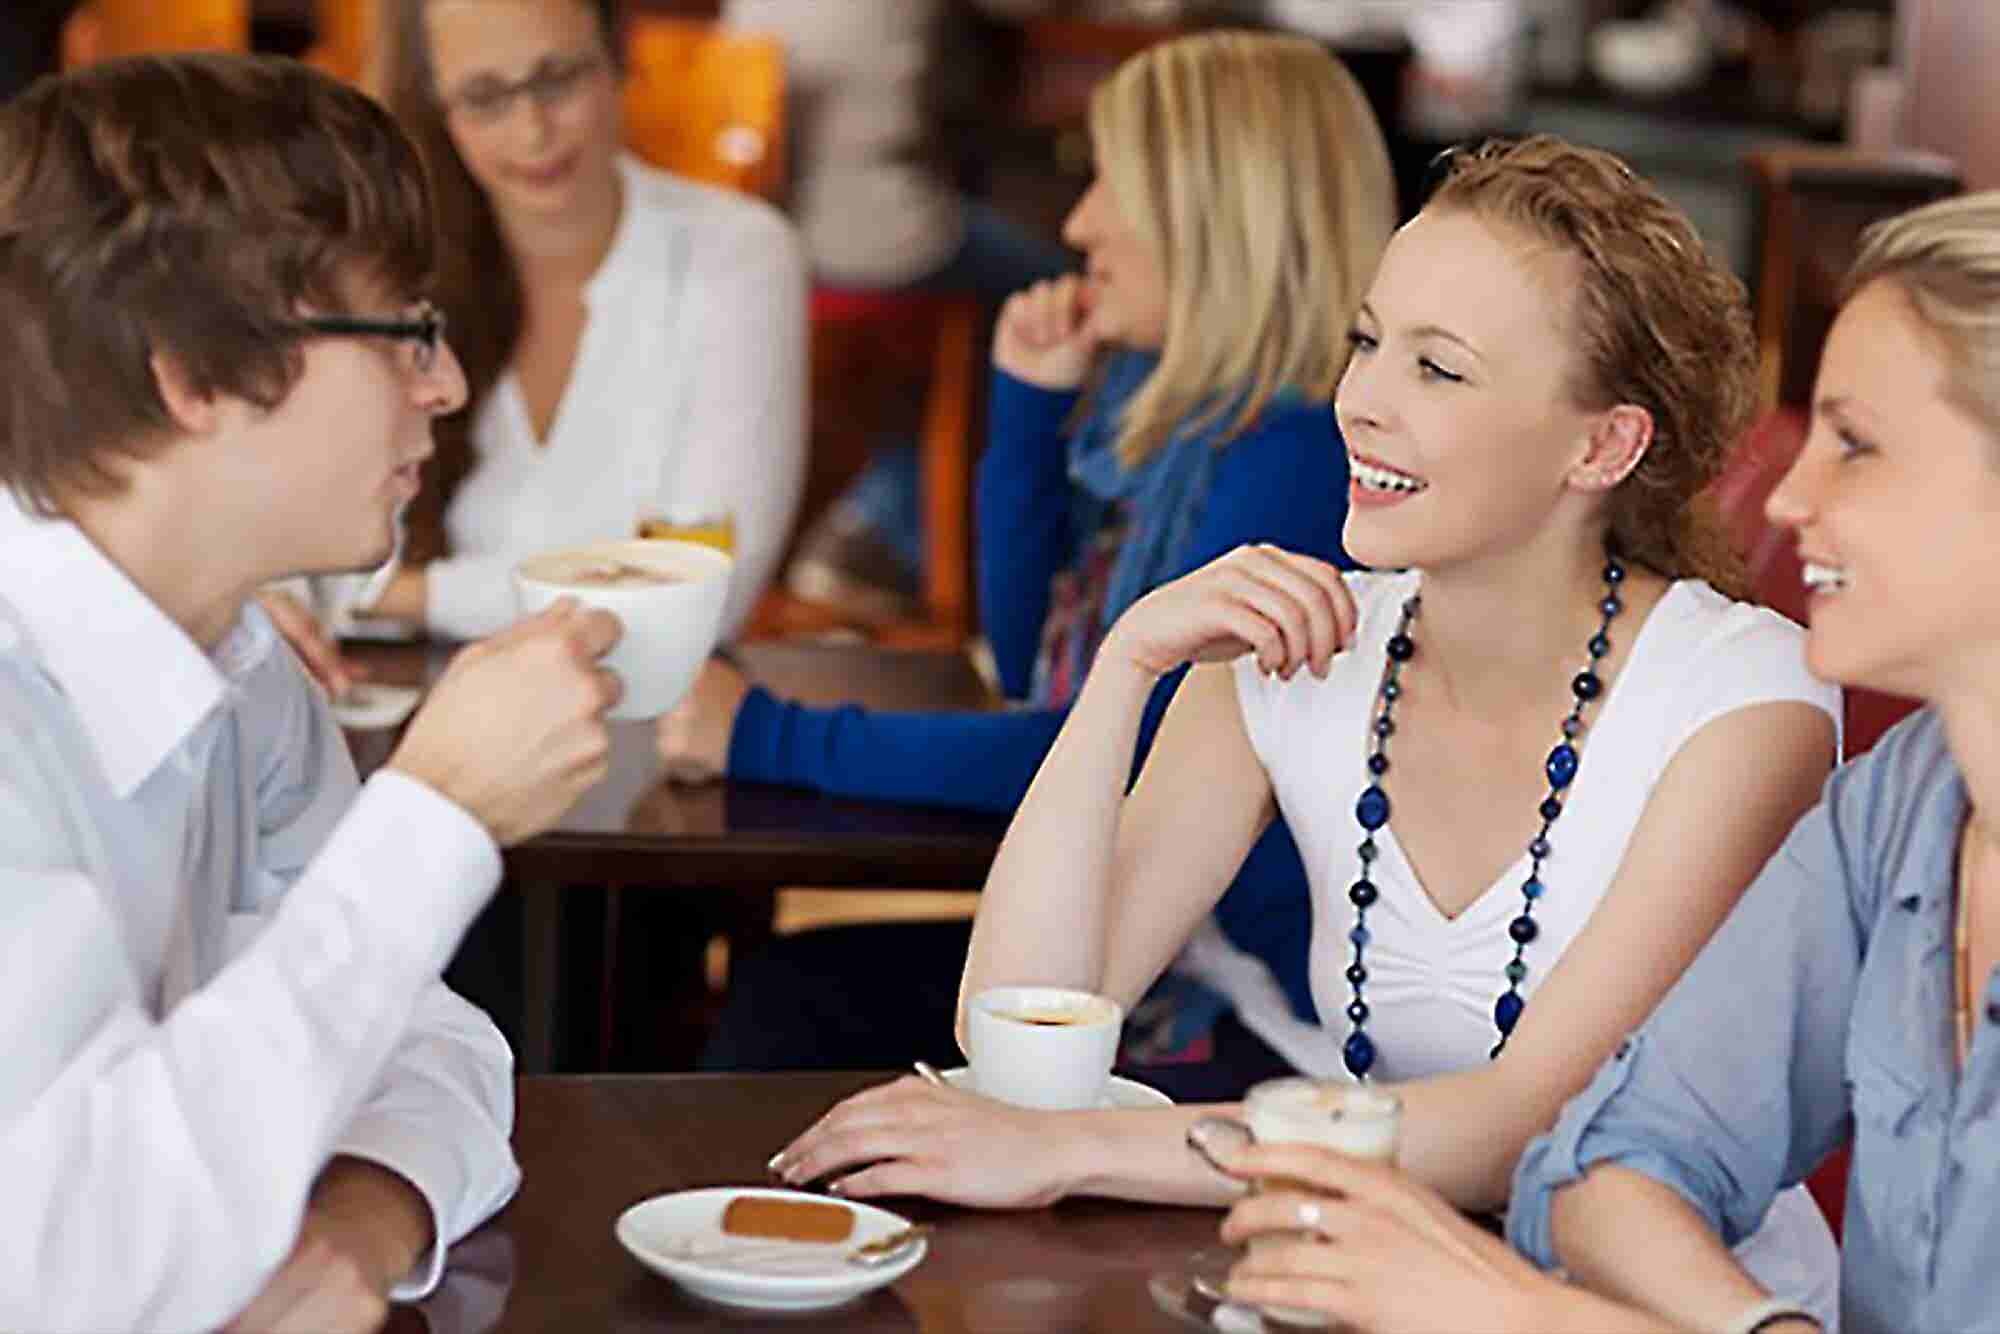 Master the Art of Small Talk to Build a Network of Business Allies